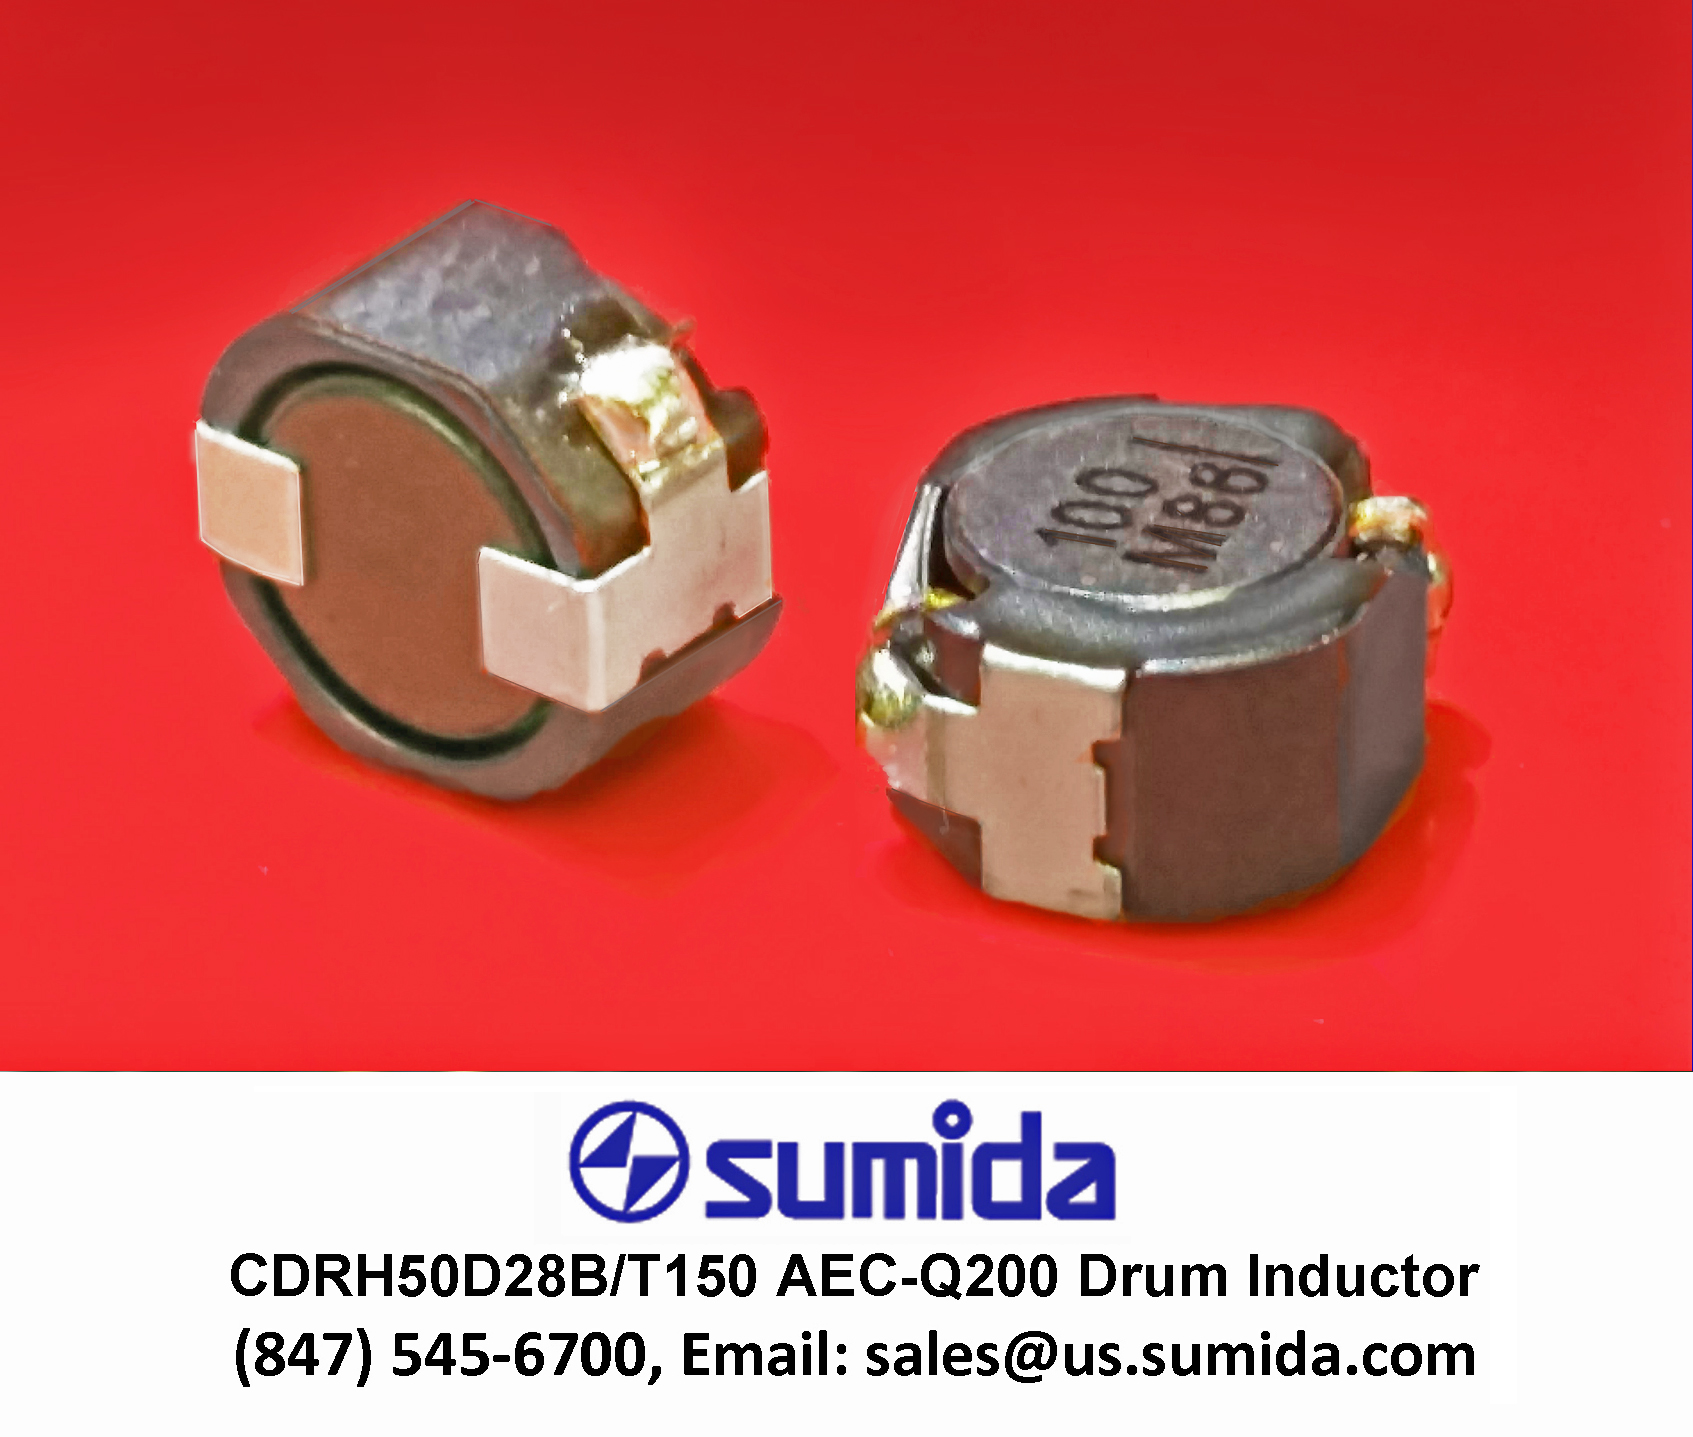 Power Systems Design Psd Information To Your Designs Quartz Crystal Oscillator Circuit Automotivecircuit Shielded Drum Inductor Designed For Automotive Applications